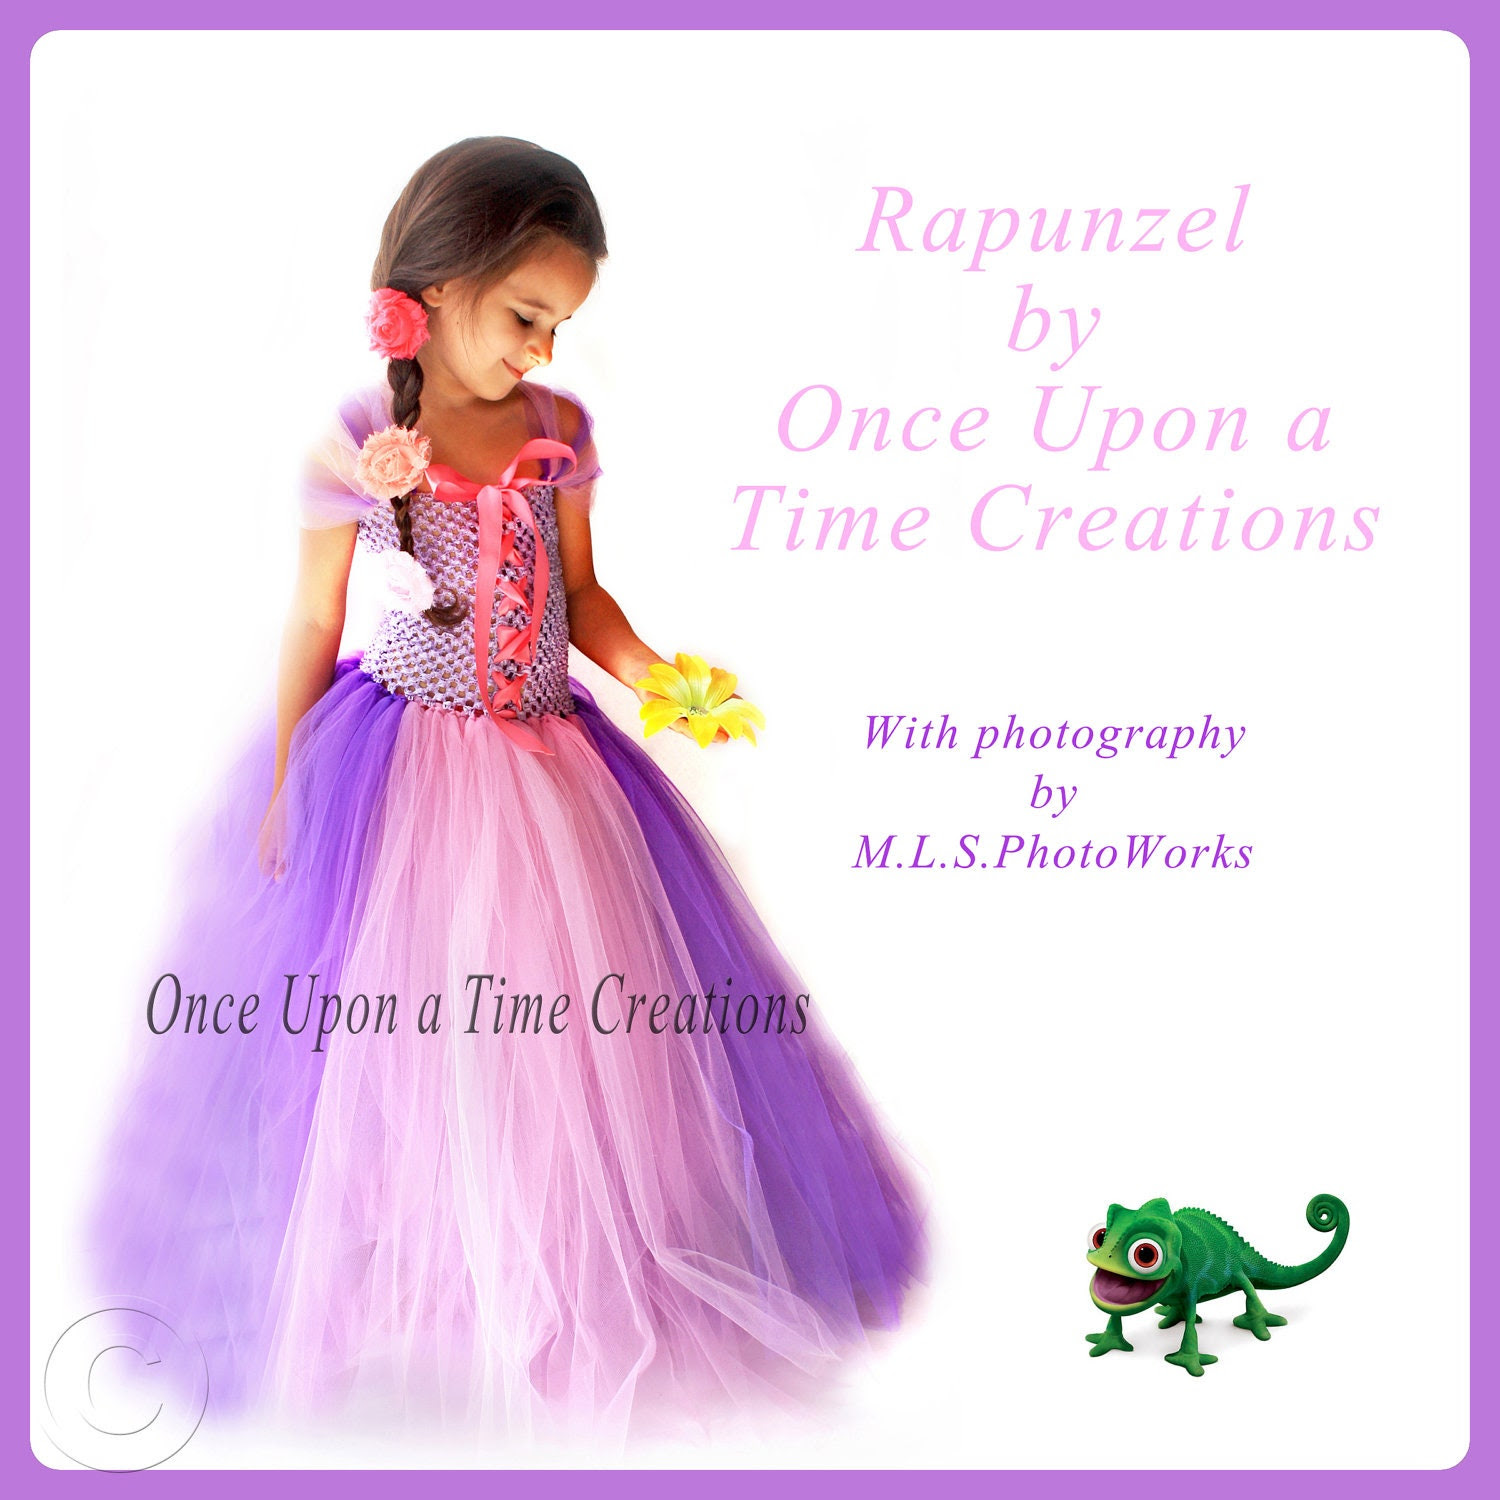 Rapunzel Inspired Princess Tutu Dress - Birthday Outfit, Photo Prop, Halloween Costume - 12M 2T 3T 4T 5T - Disney Tangled Inspired